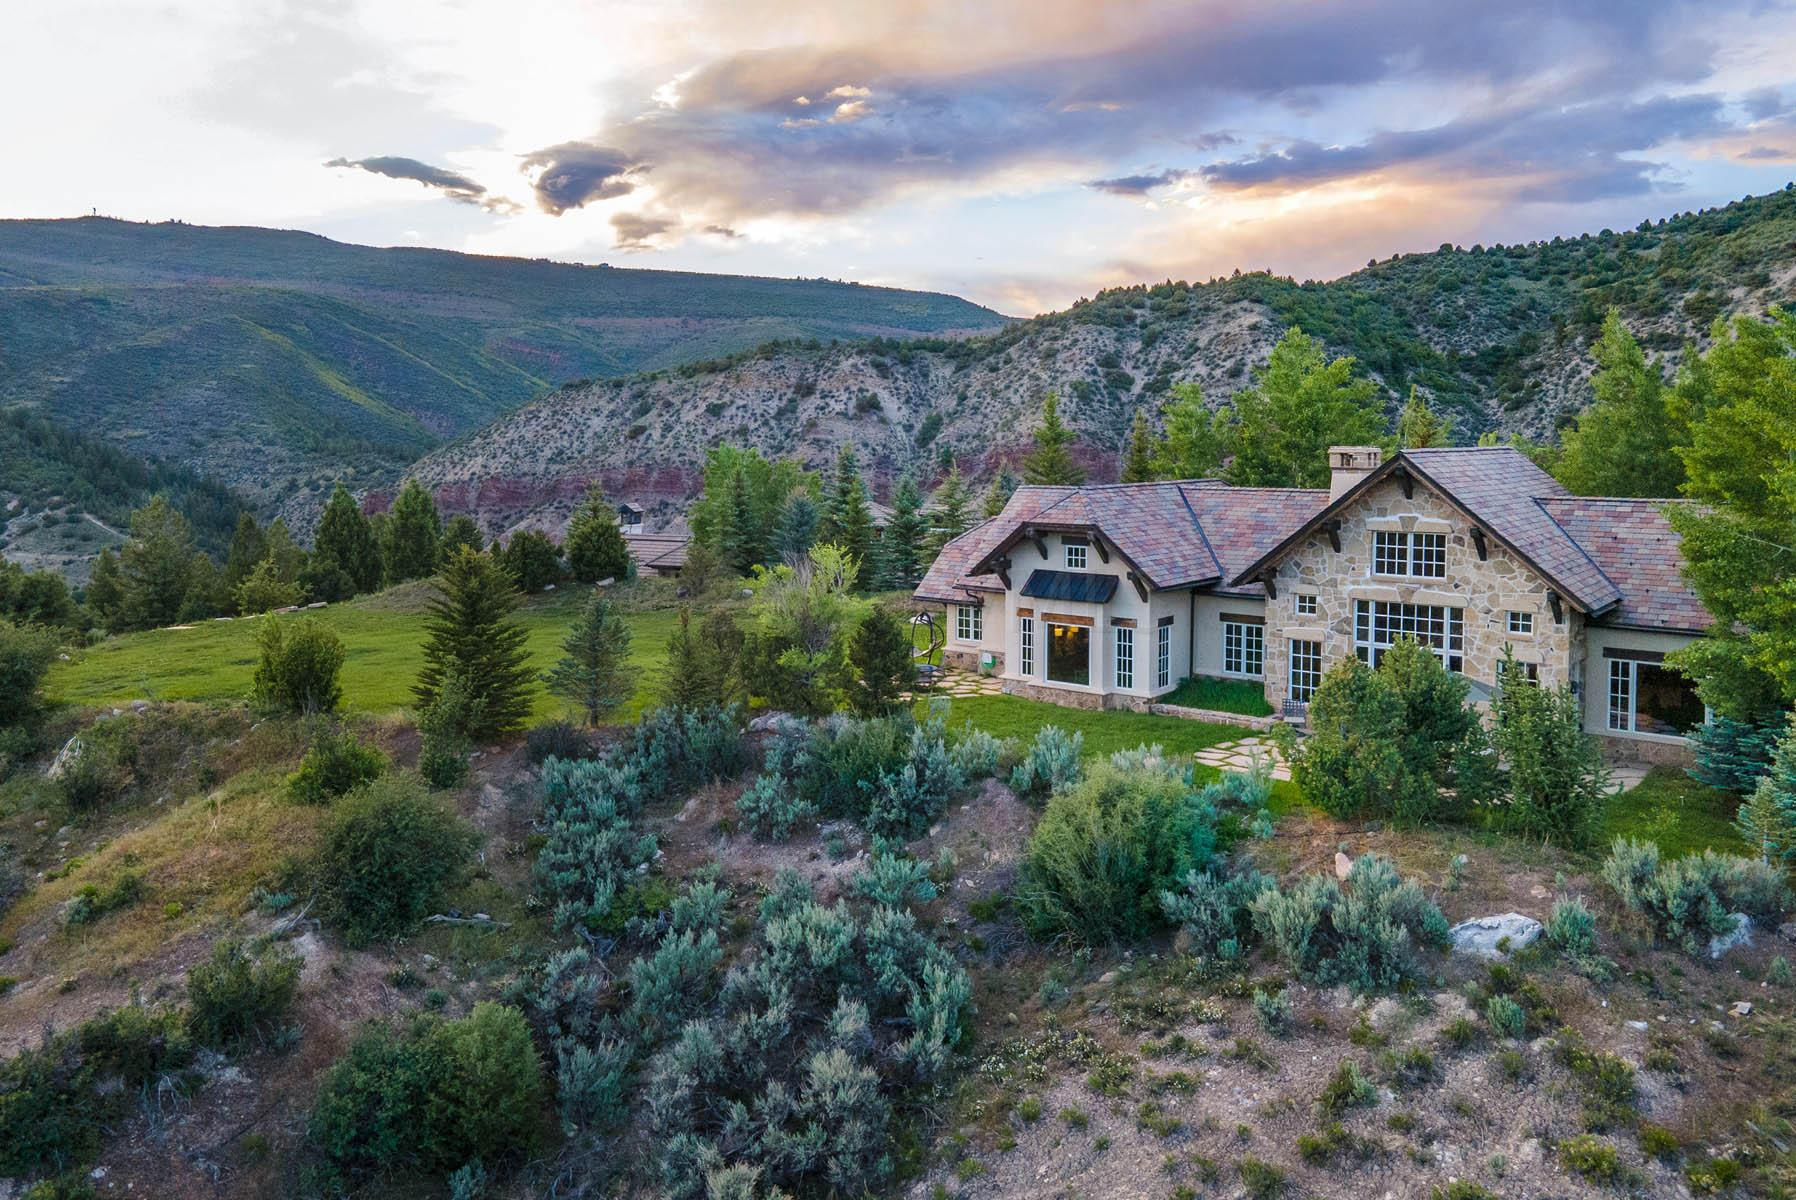 This stunning masterpiece is located at the end of a quiet cul-de-sac on 2 lots spanning 4.6 acres with incredible views. This private residence features several outdoor patios and expansive backyard space to host a multitude  of family activities or events.The open layout on the main level encompasses the master bedroom, office/study that could serve as the 4th bedroom, a wine cellar, overflowing great room which leads into the dining area, and gourmet kitchen with an attached hearth room.  Additionally, each of the main rooms lead to the lush backyard enabling you to entertain seamlessly from inside out.  With the backyard stretching from end-to-end with unobstructed panoramas, enjoy summer nights around the outdoor grill or engage in game nights with family and friends alike.  Completing the upstairs are 2 en-suite bedrooms, branching off the family room with several spacious closets for ample storage space. Enjoy multi-level living in this gorgeous, custom home with vaulted ceilings and stone accented walls throughout. For an additional $25K, you can purchase most furnishings & furniture. Visit the unbranded property website, mls.CordilleraDivide.com for additional details.